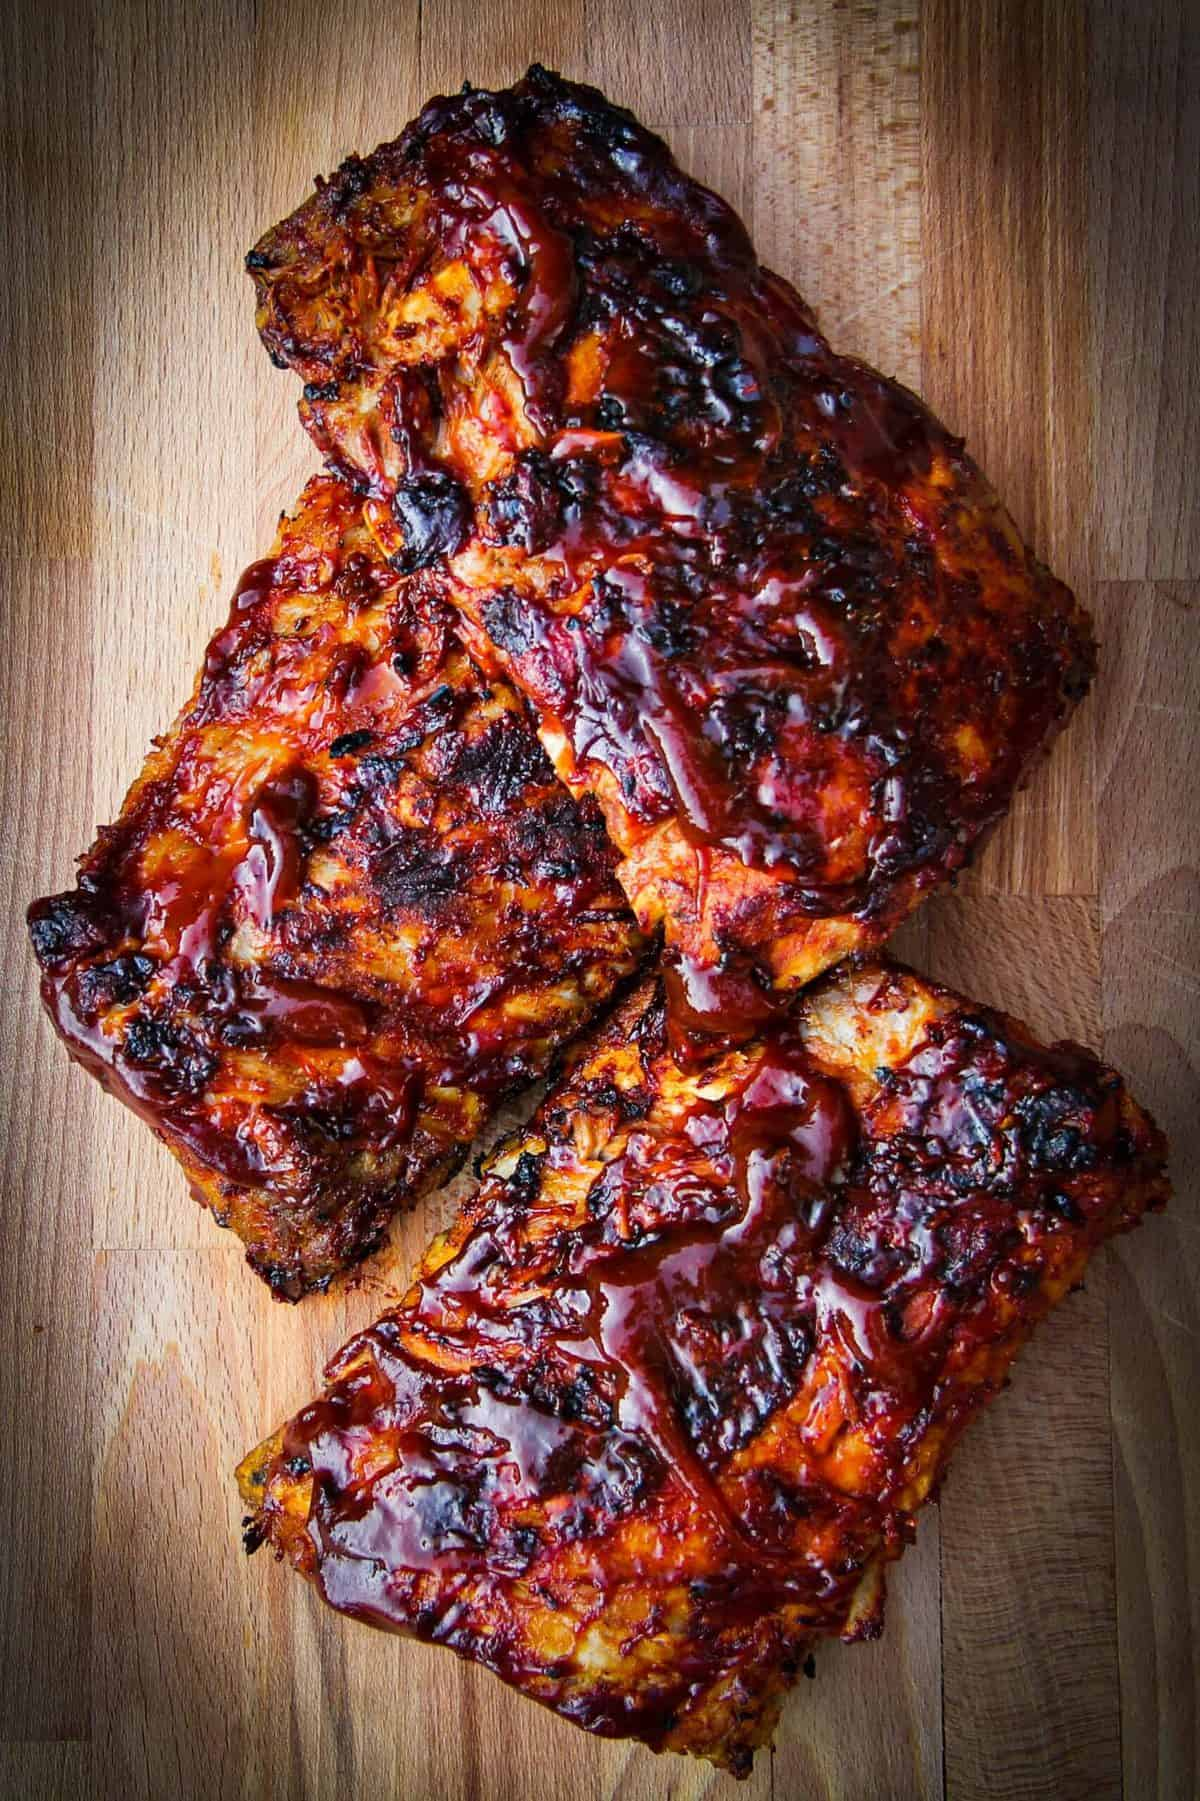 Finished ribs on a wooden board.